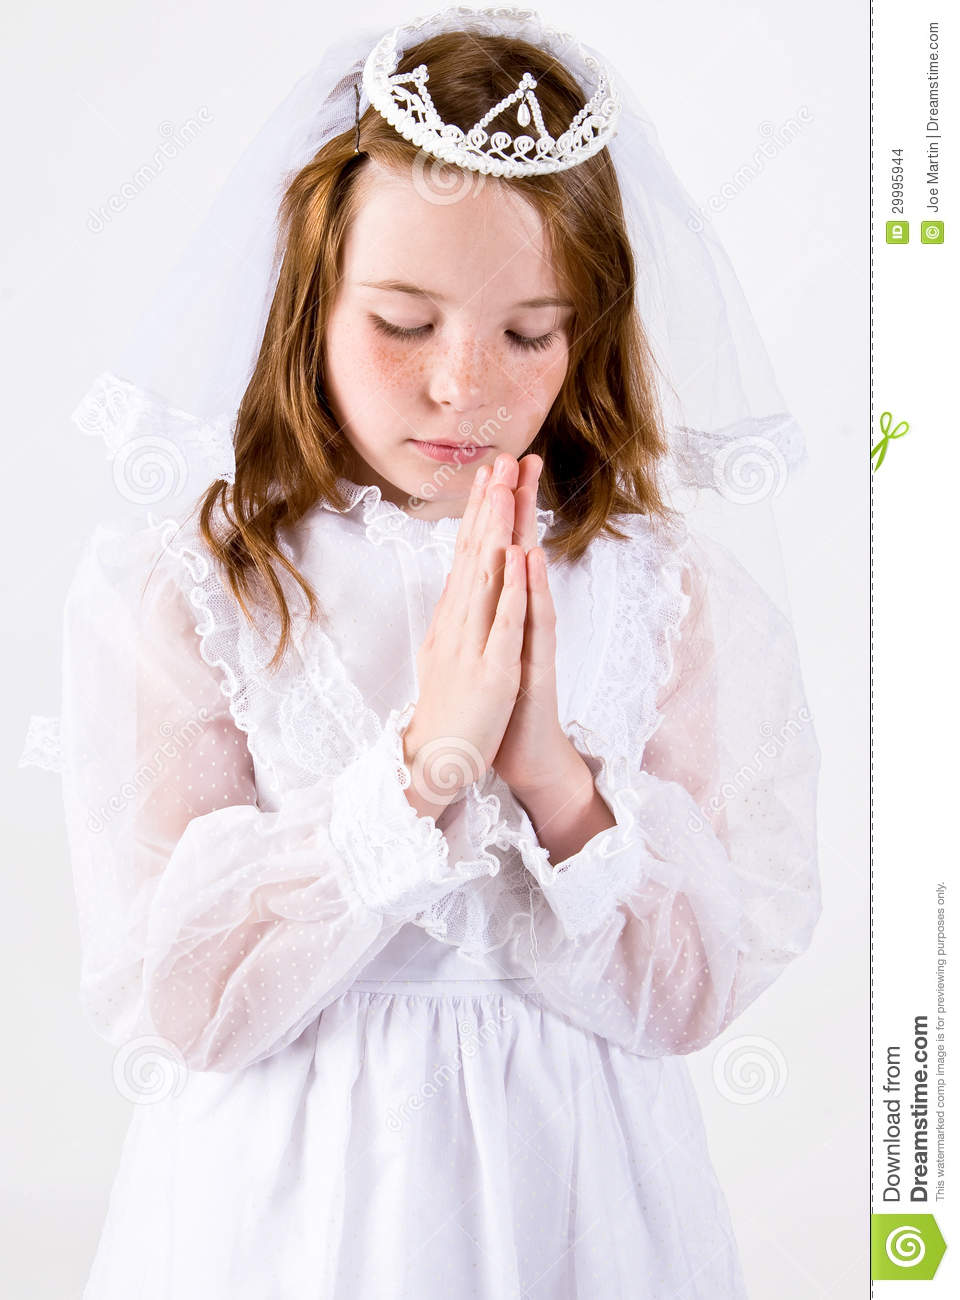 Young Girl Praying In First Communion Attire Stock Photo Image Of